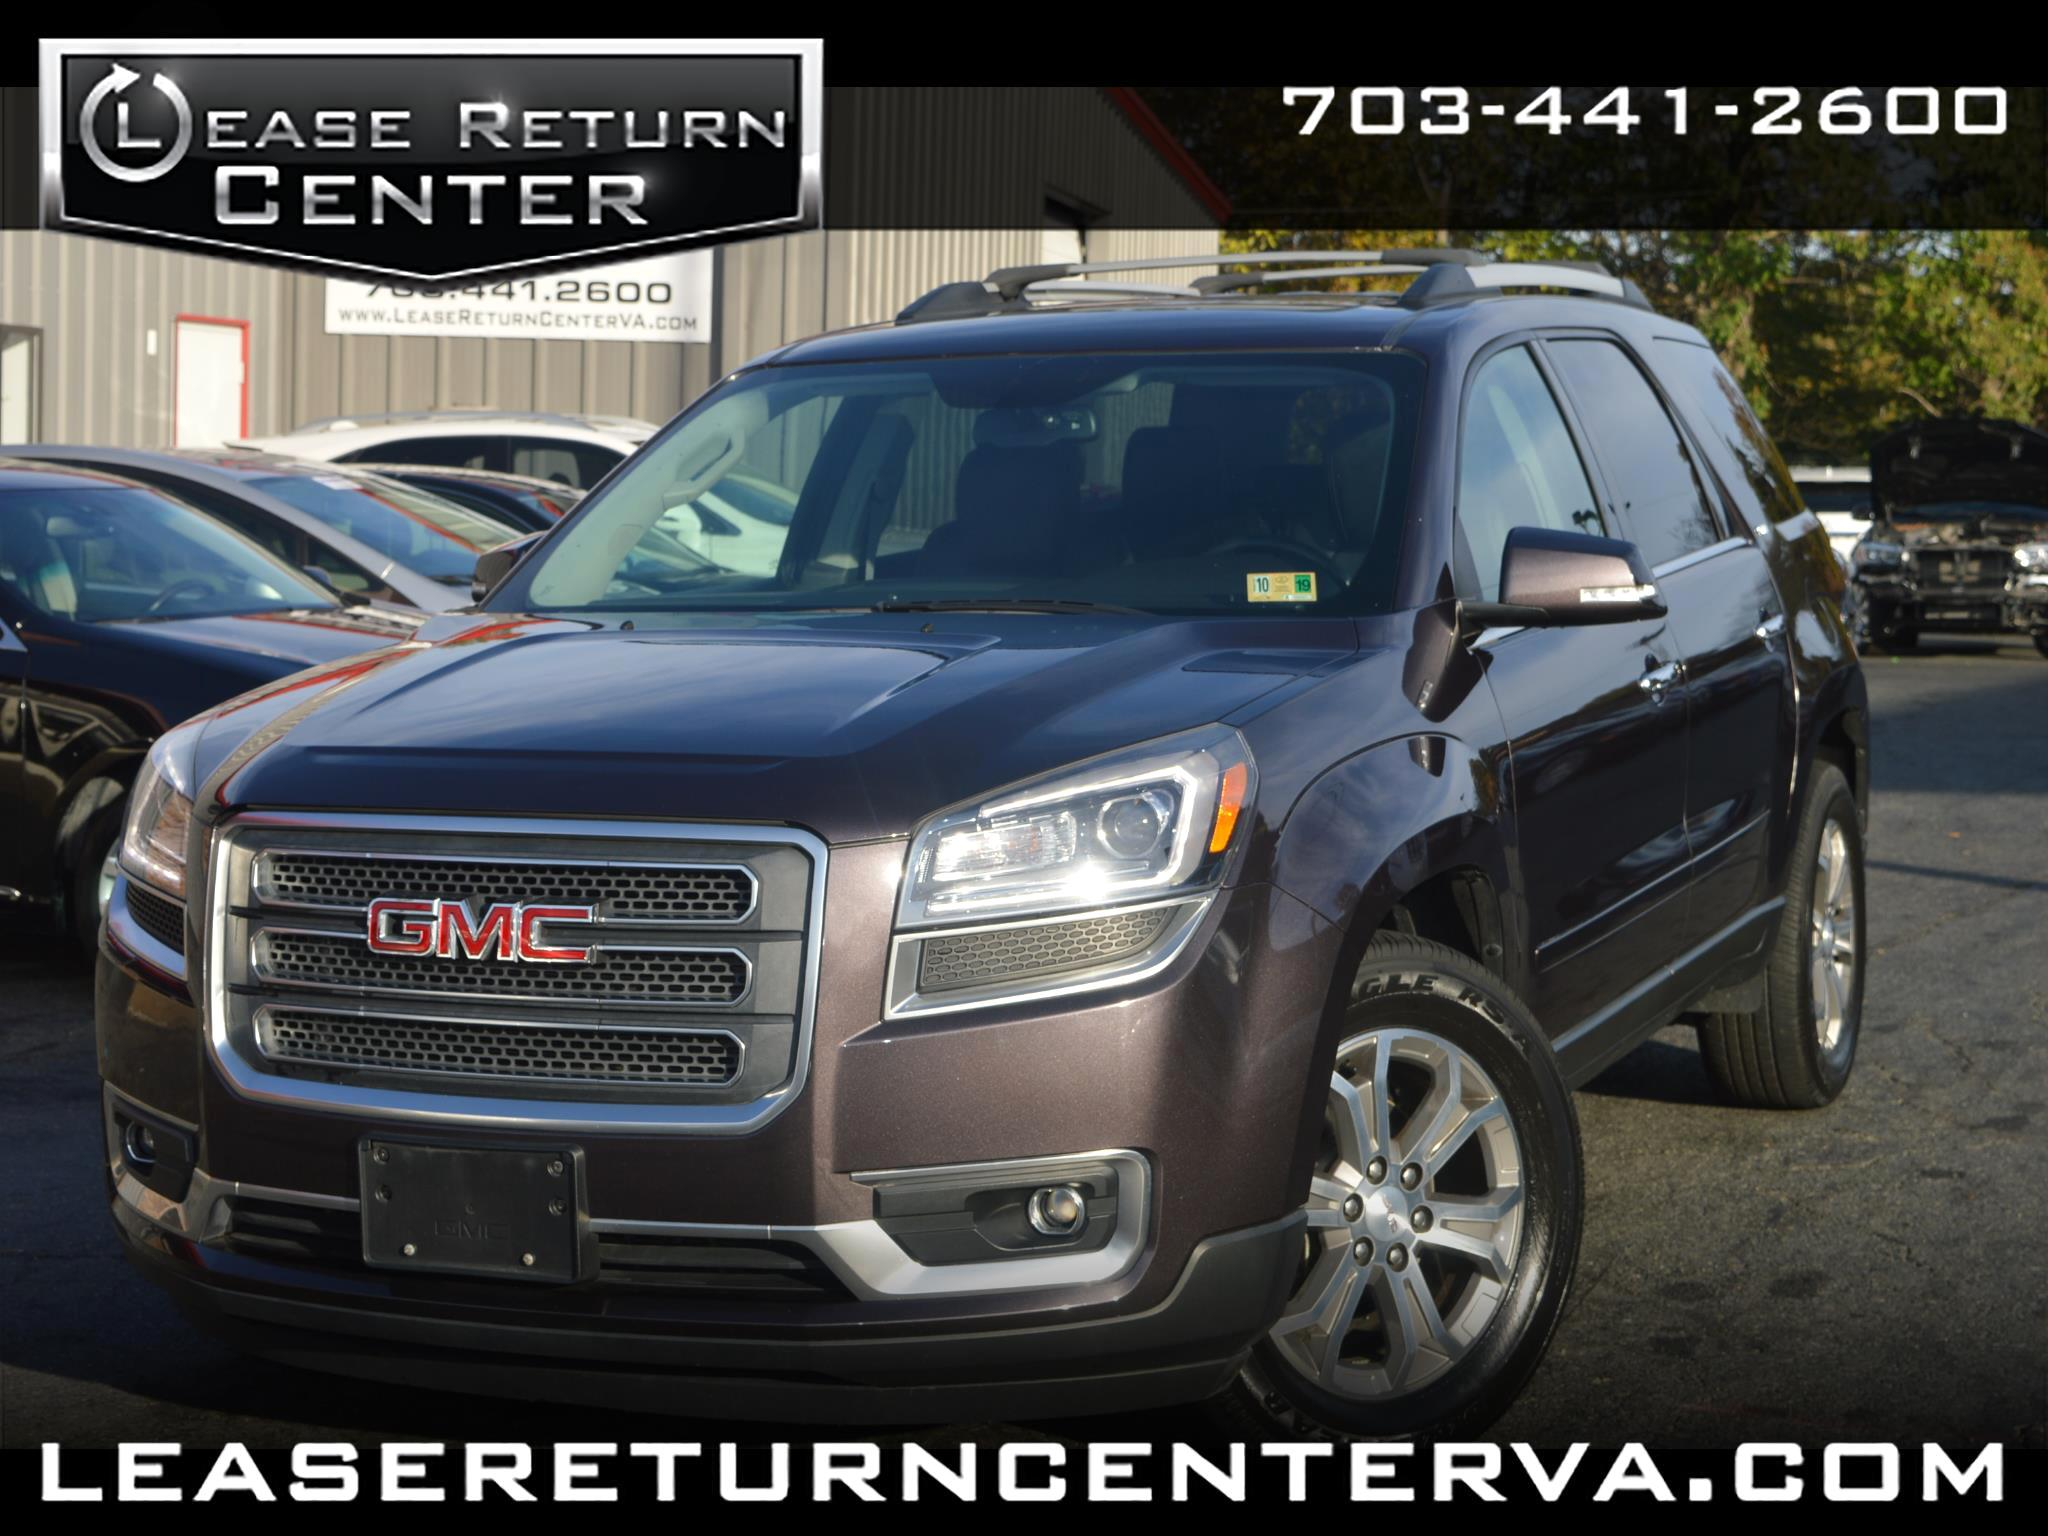 2015 GMC Acadia SLT Leather with Navigation System